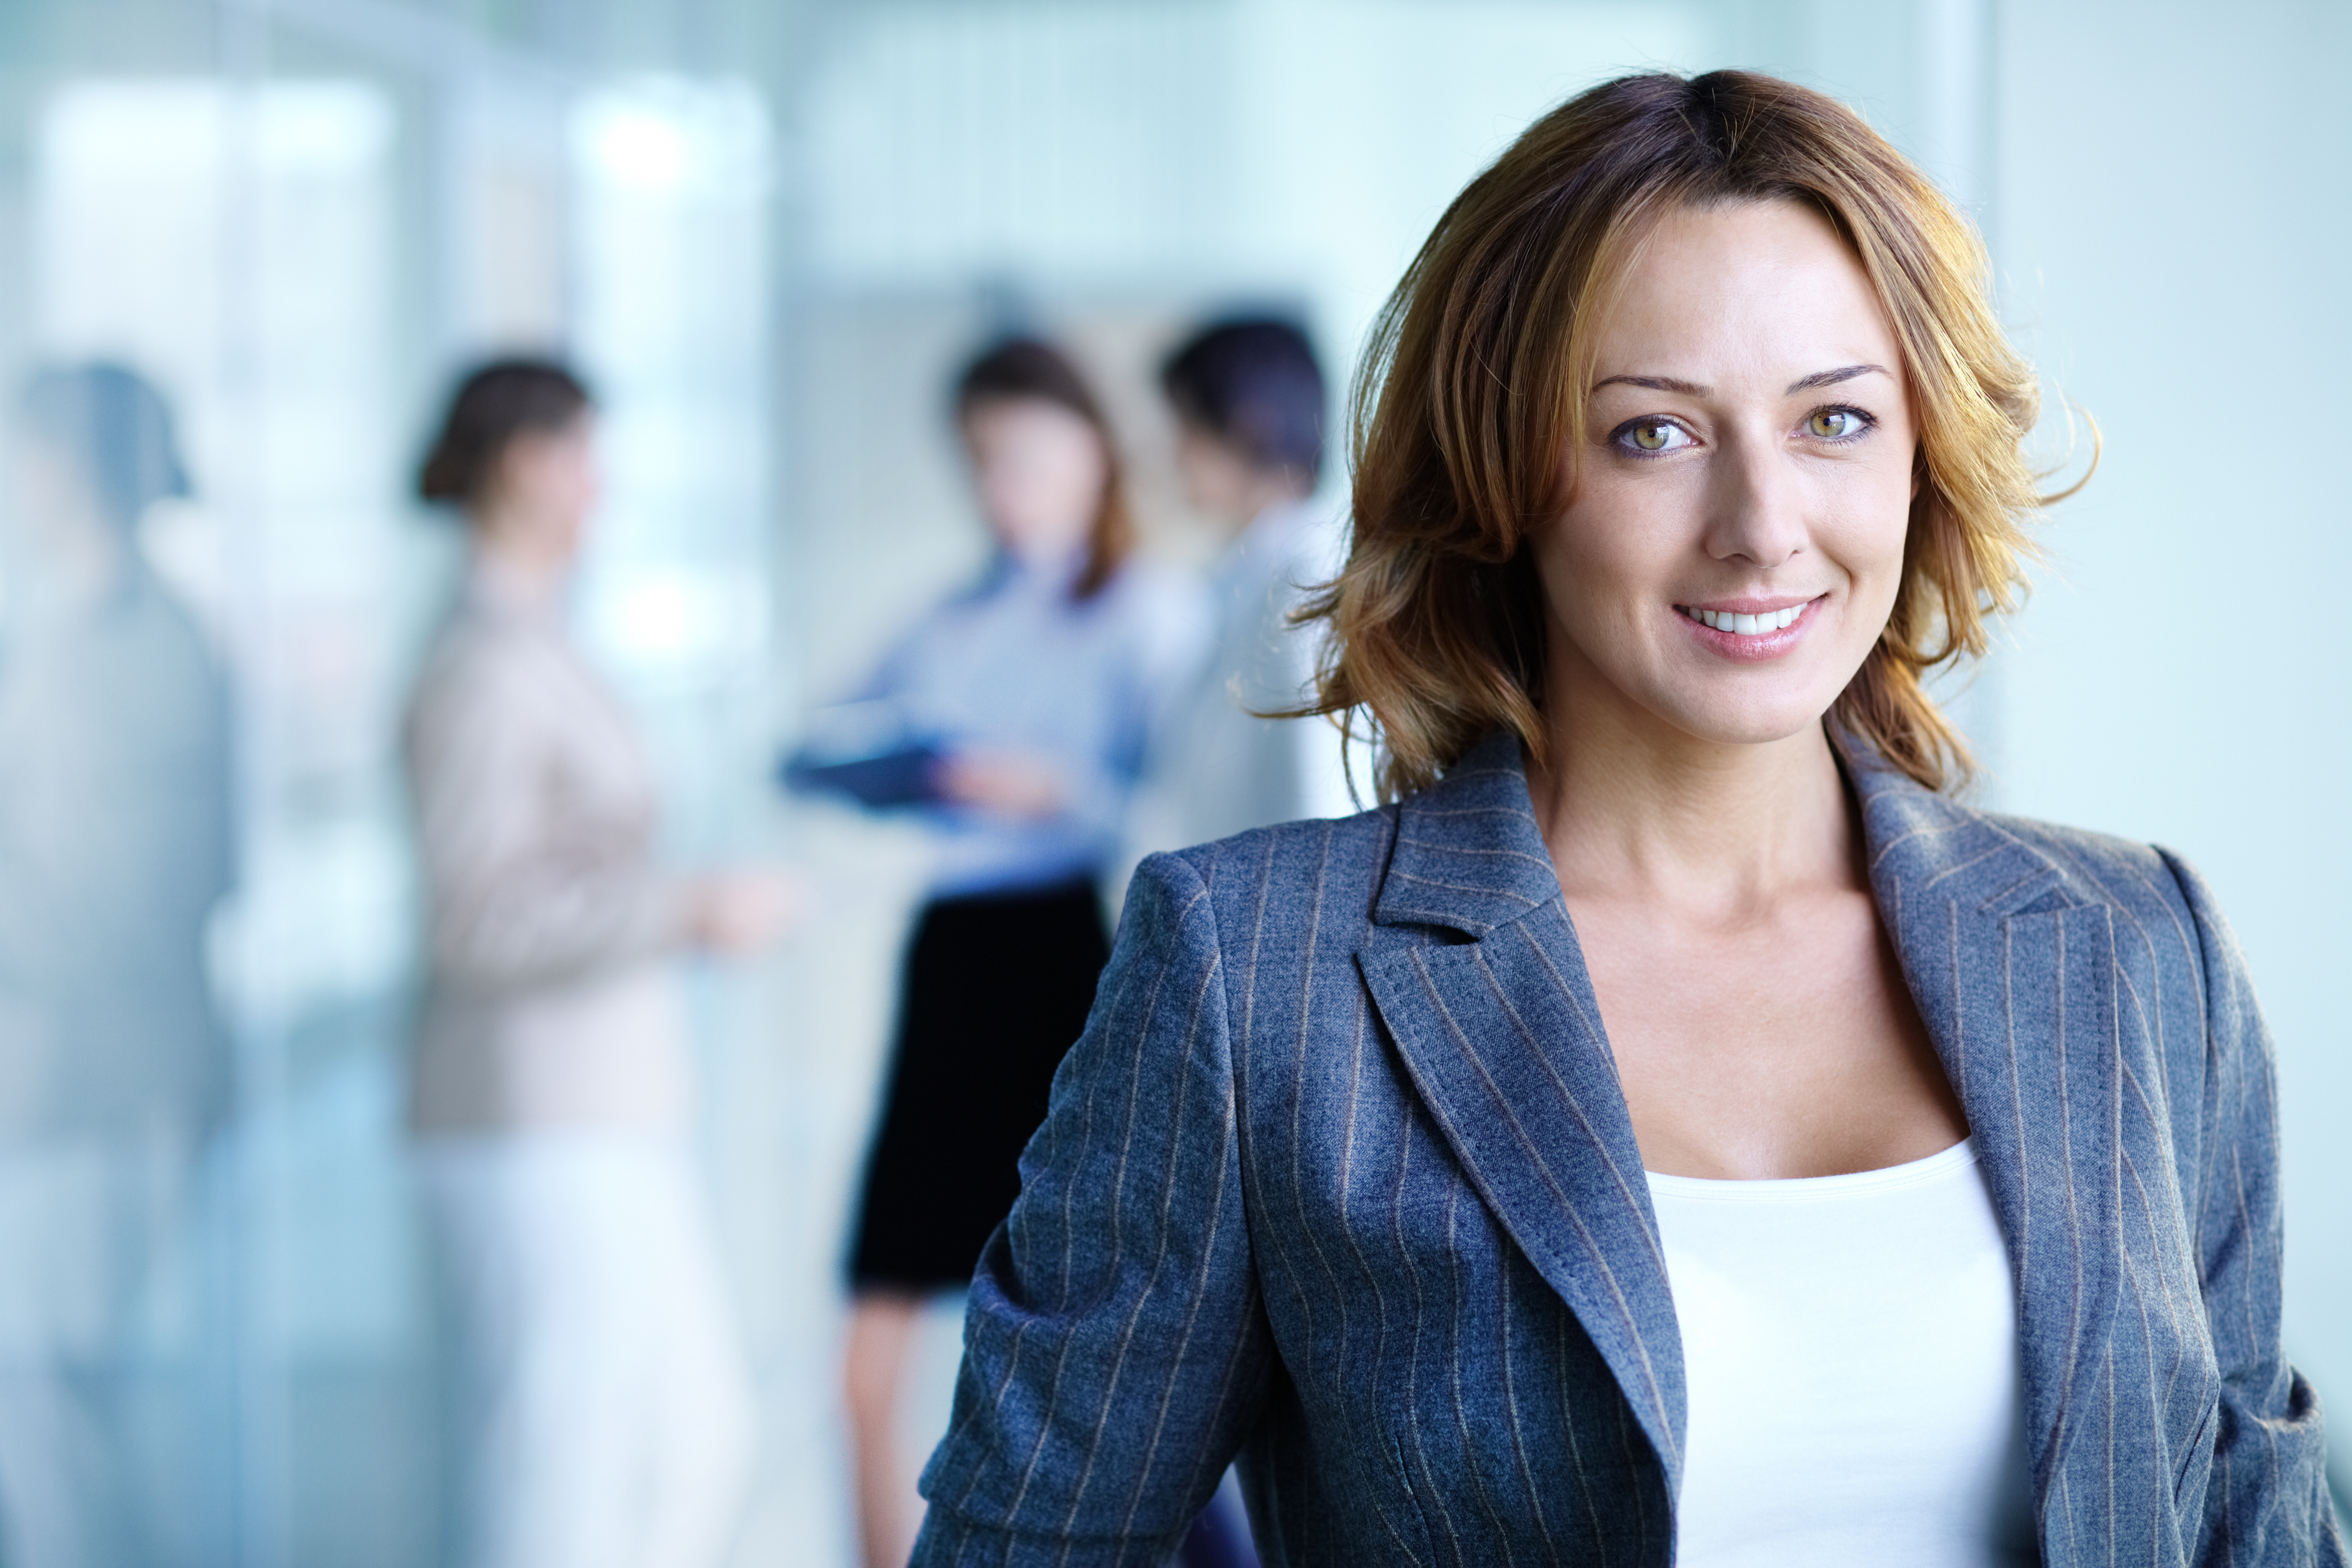 Charming business woman - Image of pretty business woman looking at camera